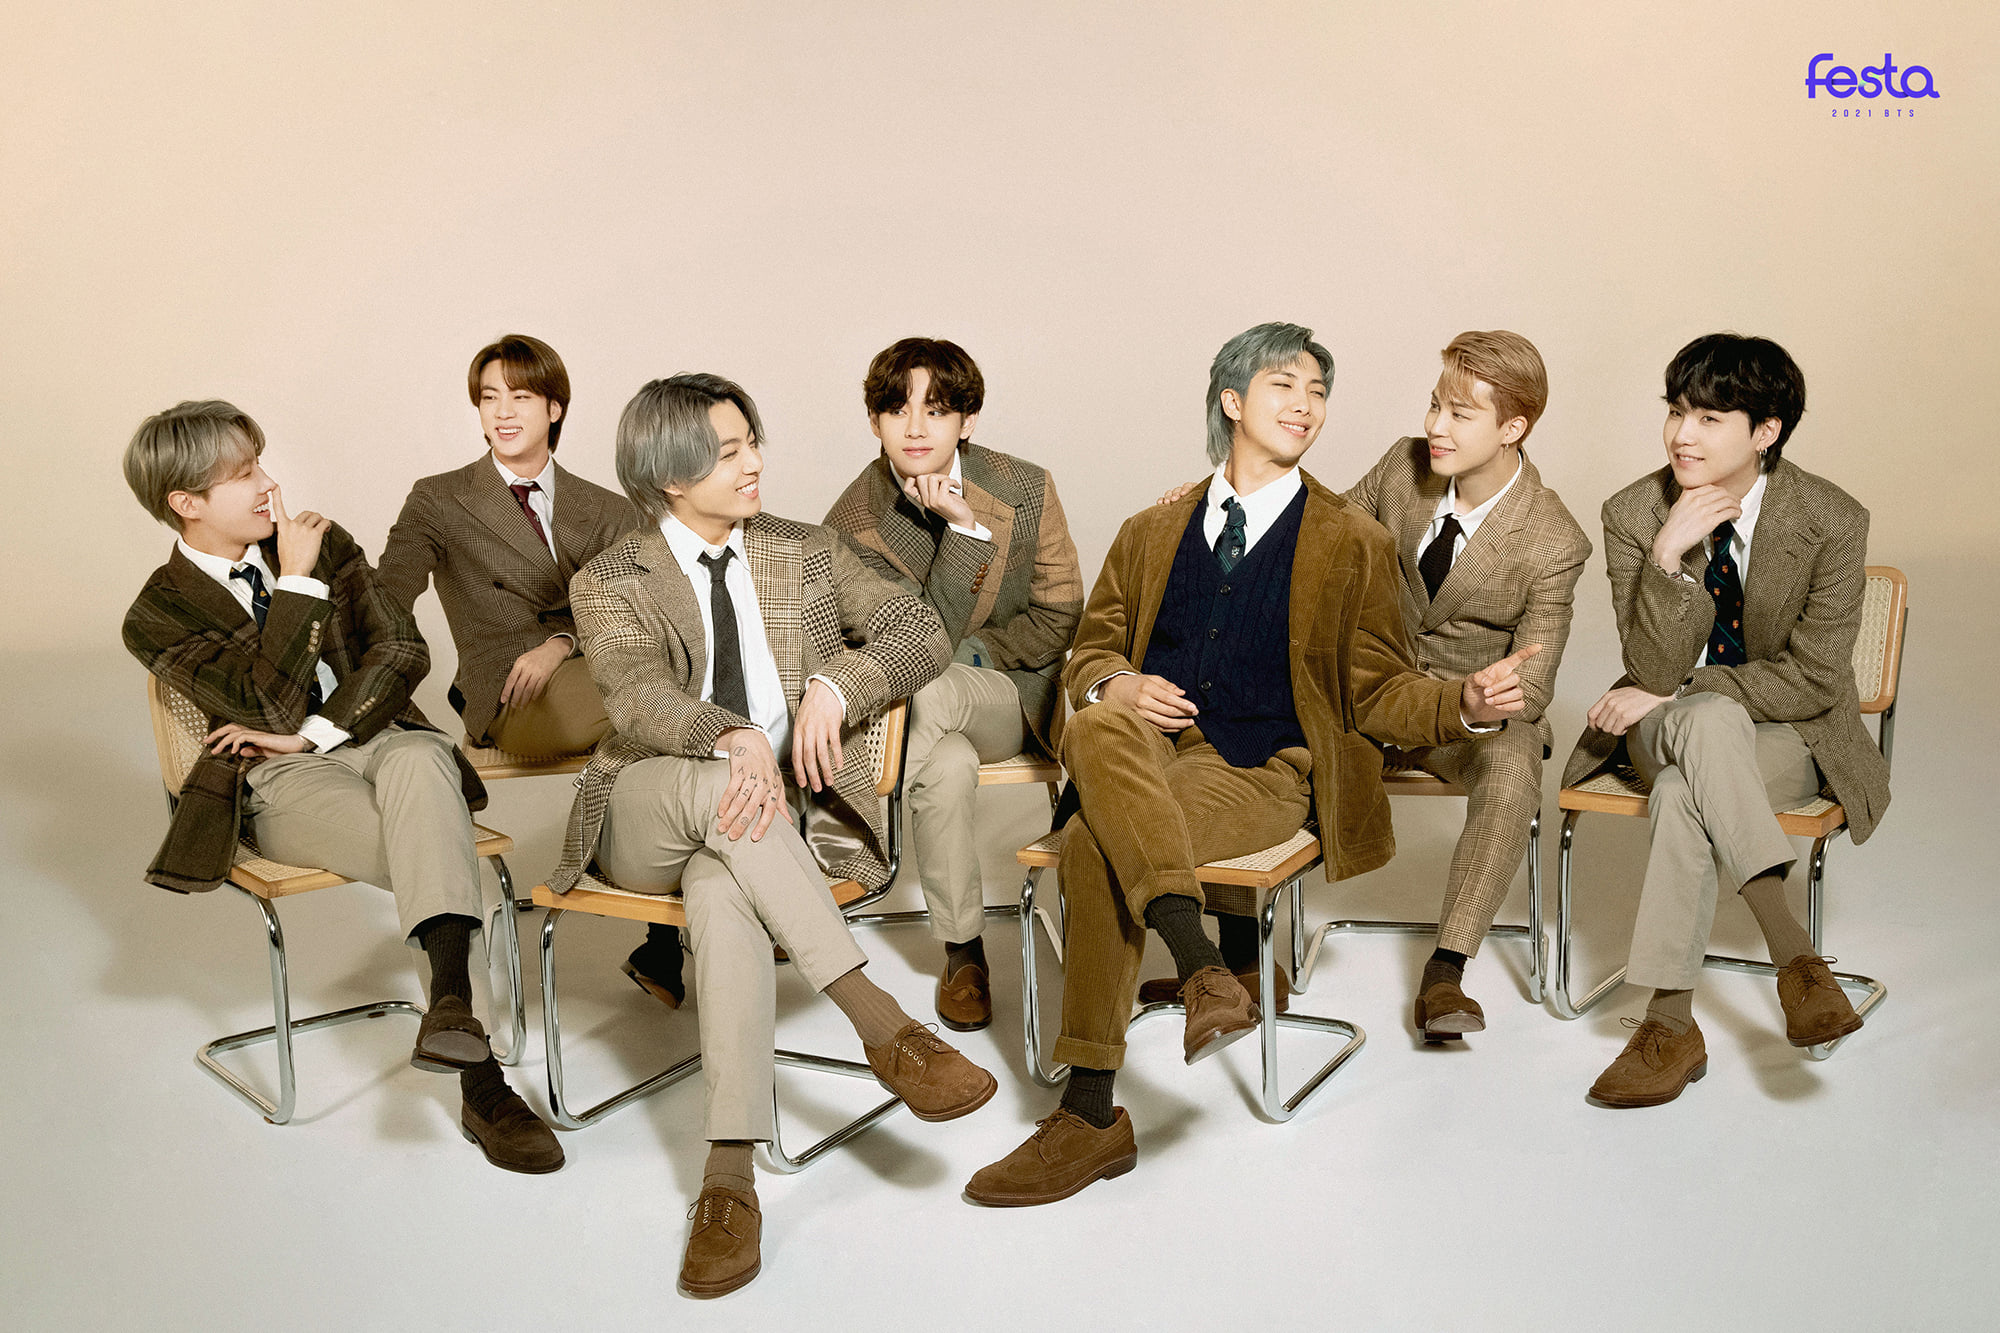 20 BTS Festa Examination, How High is Your Score   KpopPost